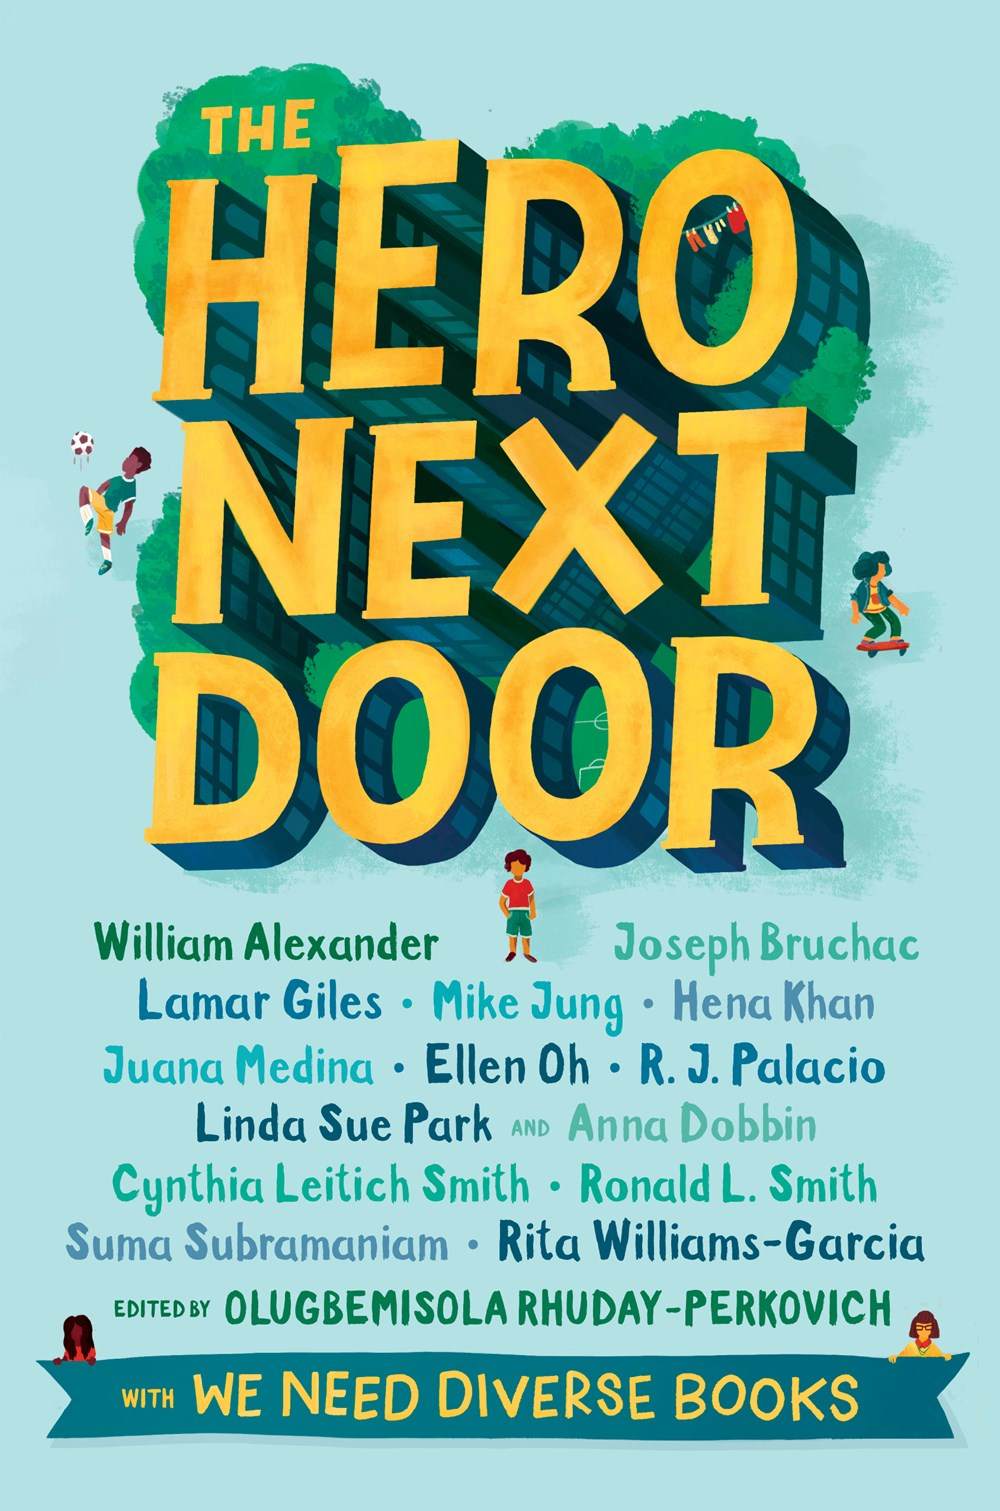 Review of The Hero Next Door